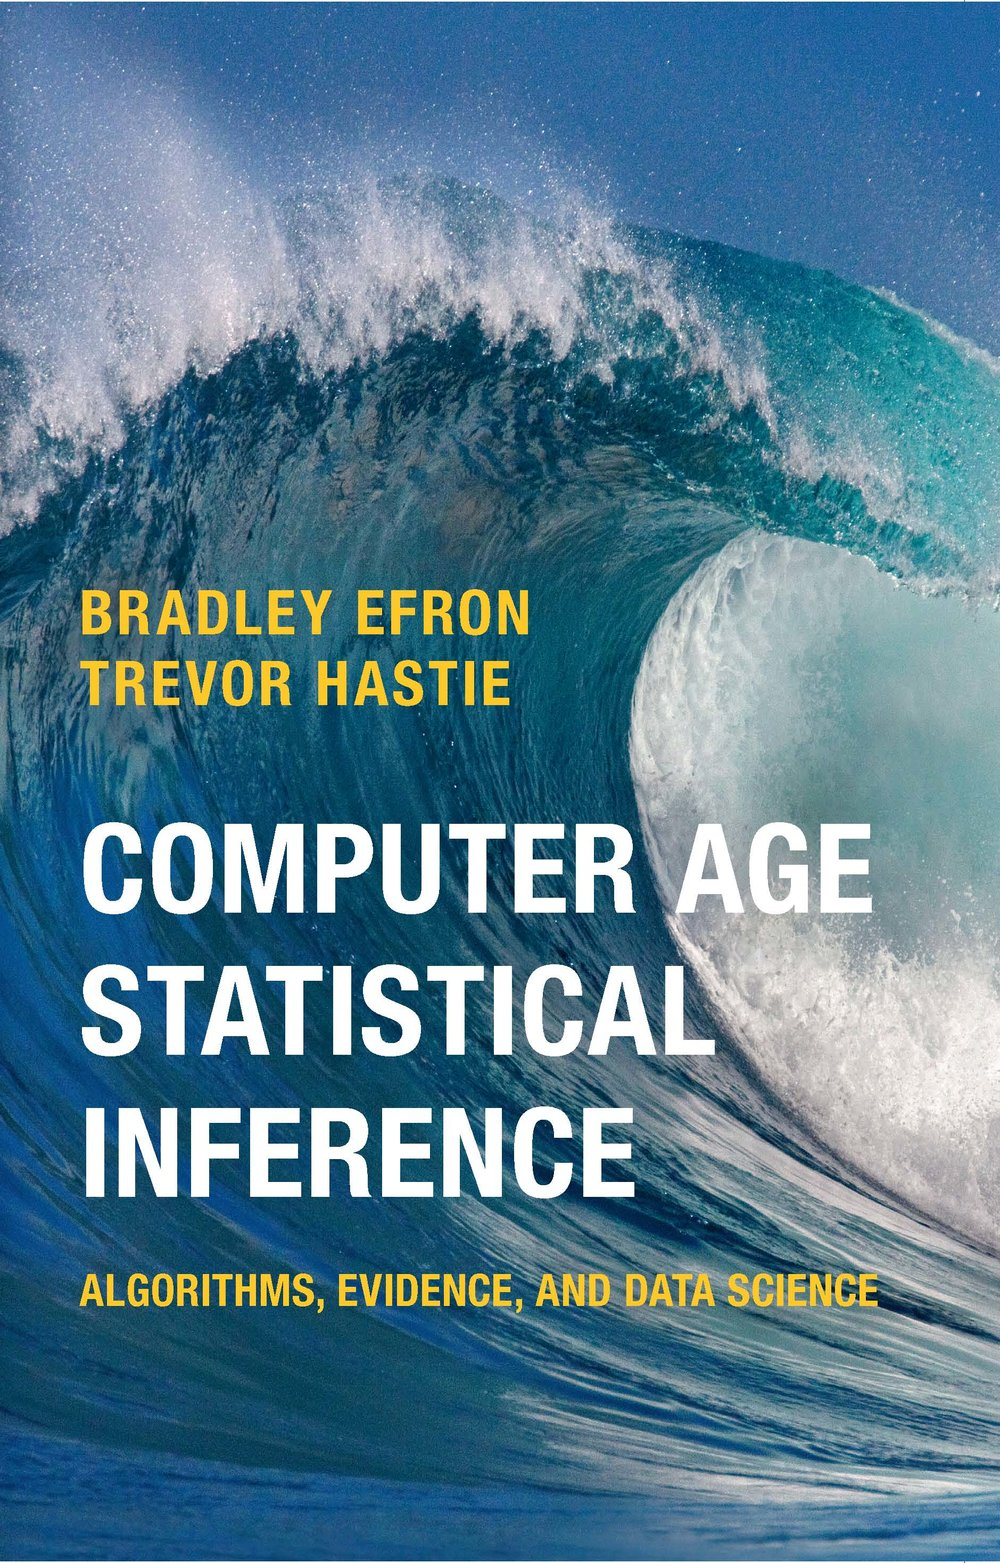 computer_age_statistical_inference.jpg